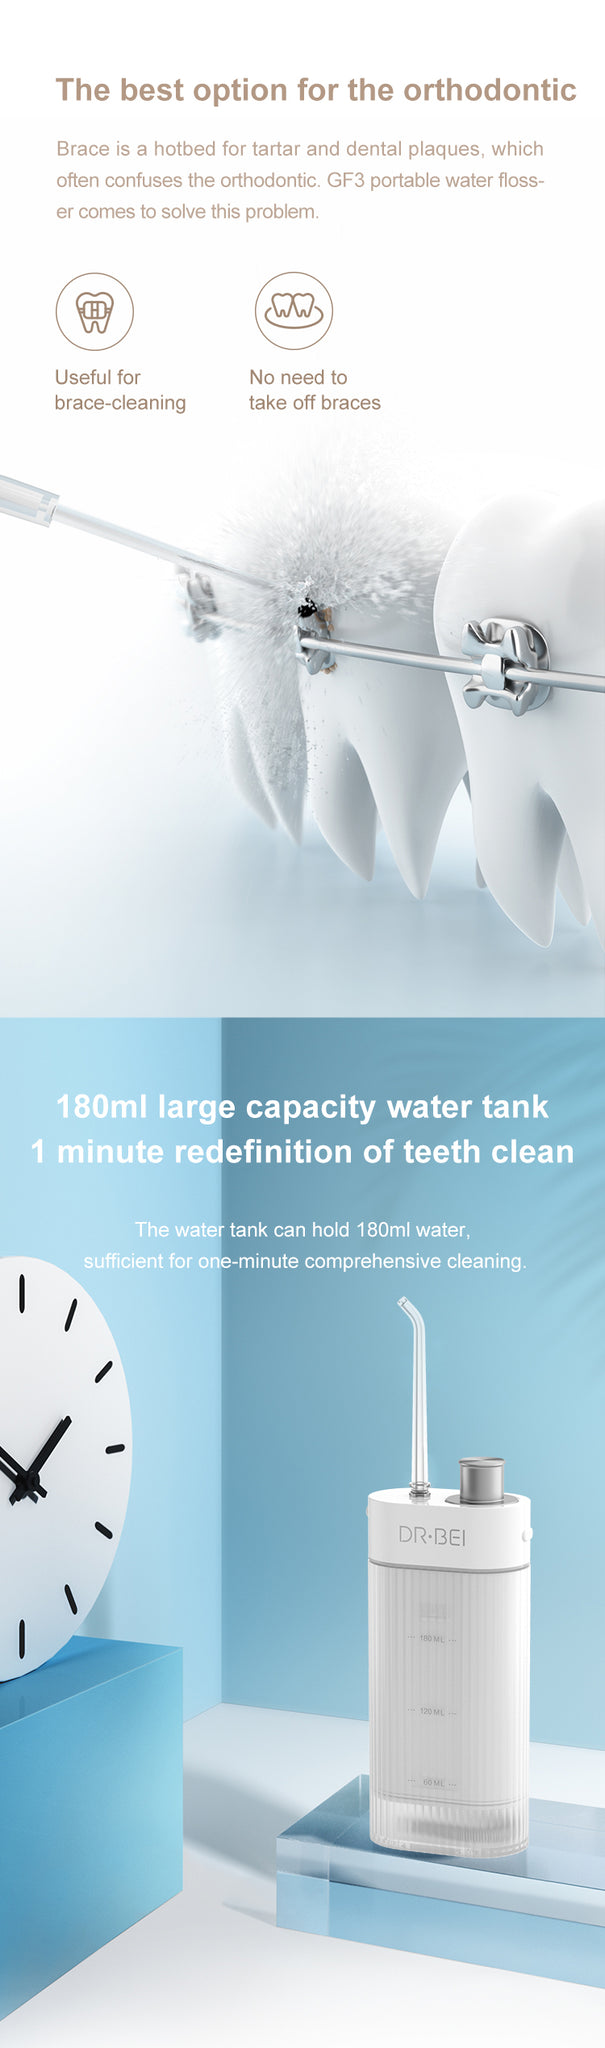 DR.BEI GF3/F3 Portable Dental Water Flosser  Xiaomi Youpin DR.BEI GF3 Oral Irrigator Water Flosser Cordless Dental Water Jet Tank Portable Rechargeable Waterproof 3 Modes Teeth Cleaner